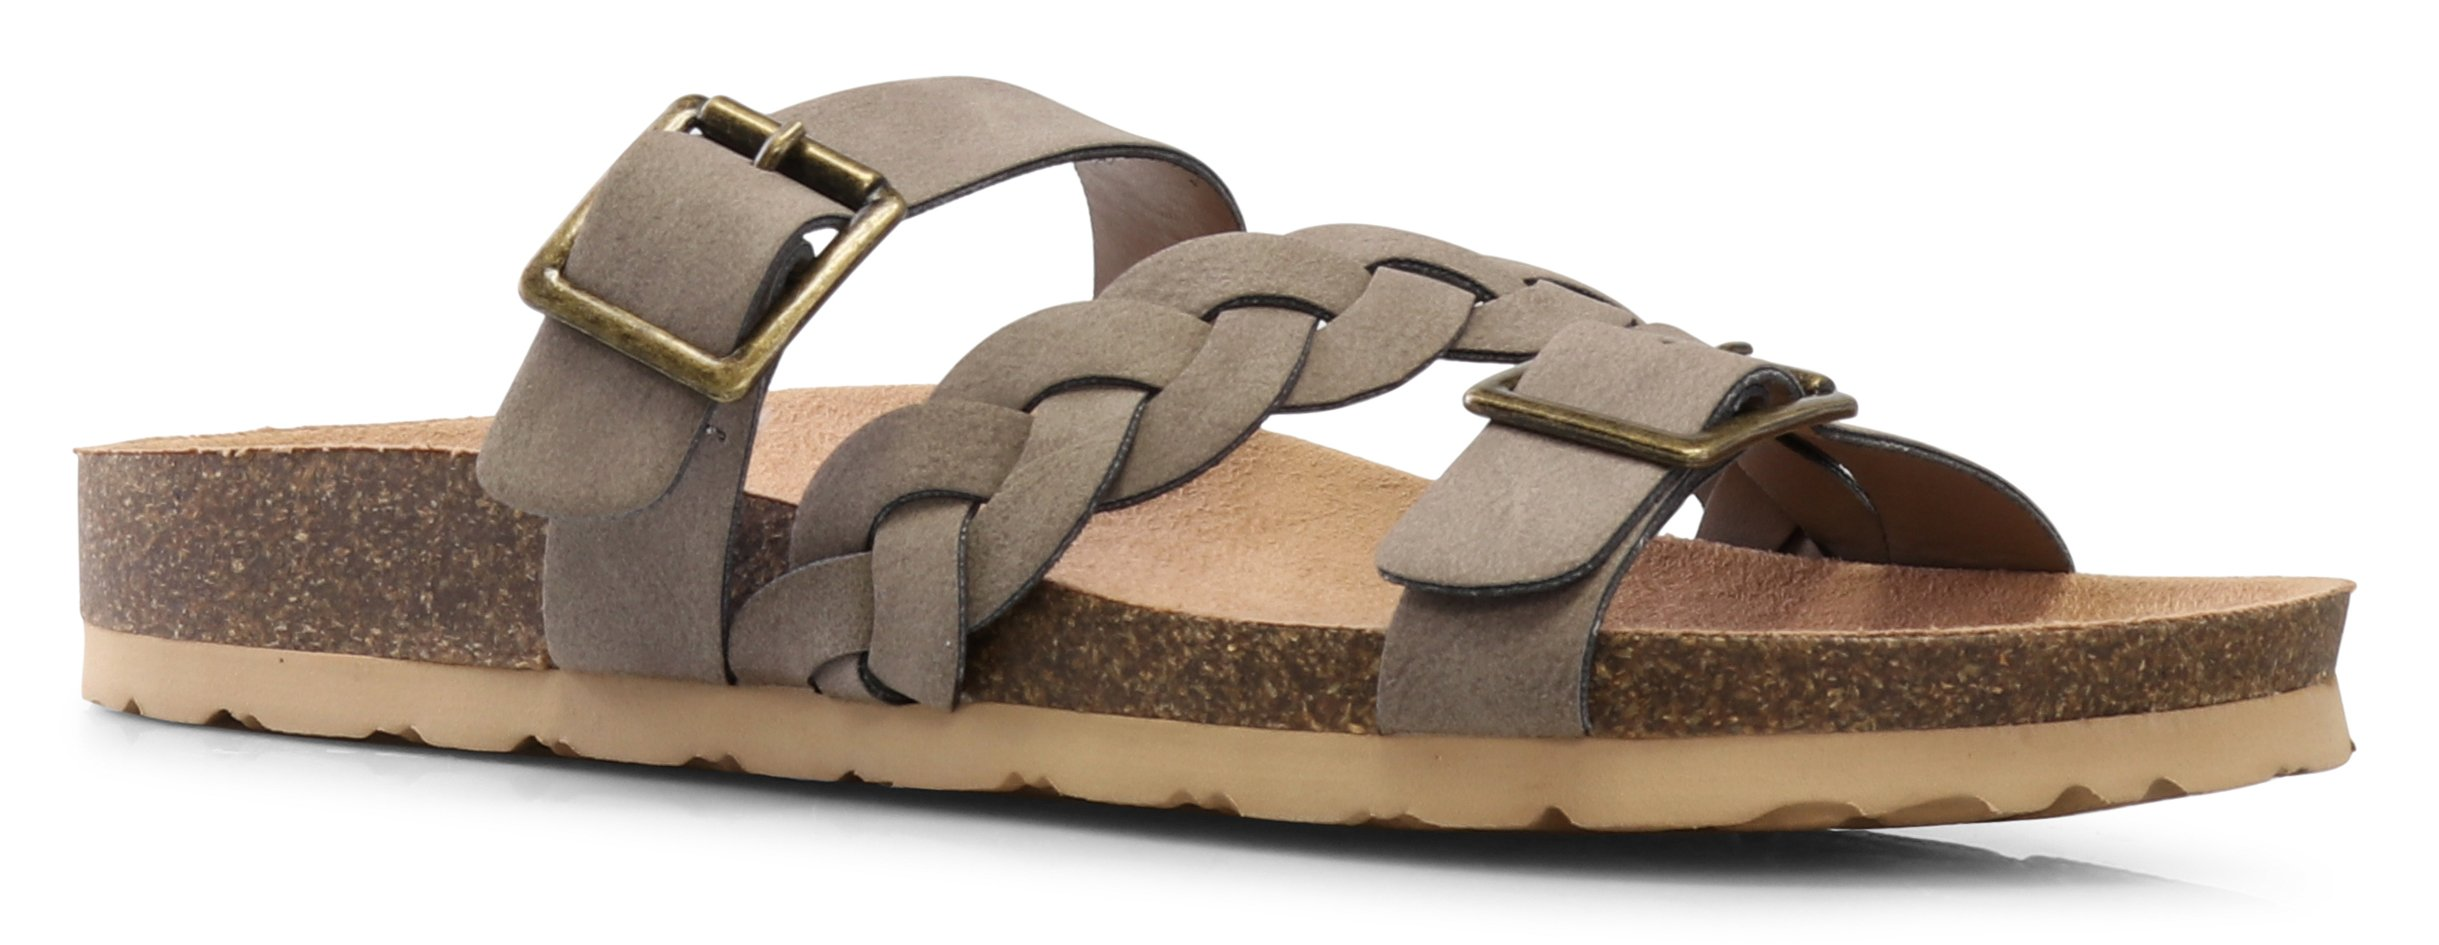 LUSTHAVE Women's Eura Slip On Braided Criss Fross Comfort Slide Buckle Flats Low Cork Platform Sandals Taupe 6